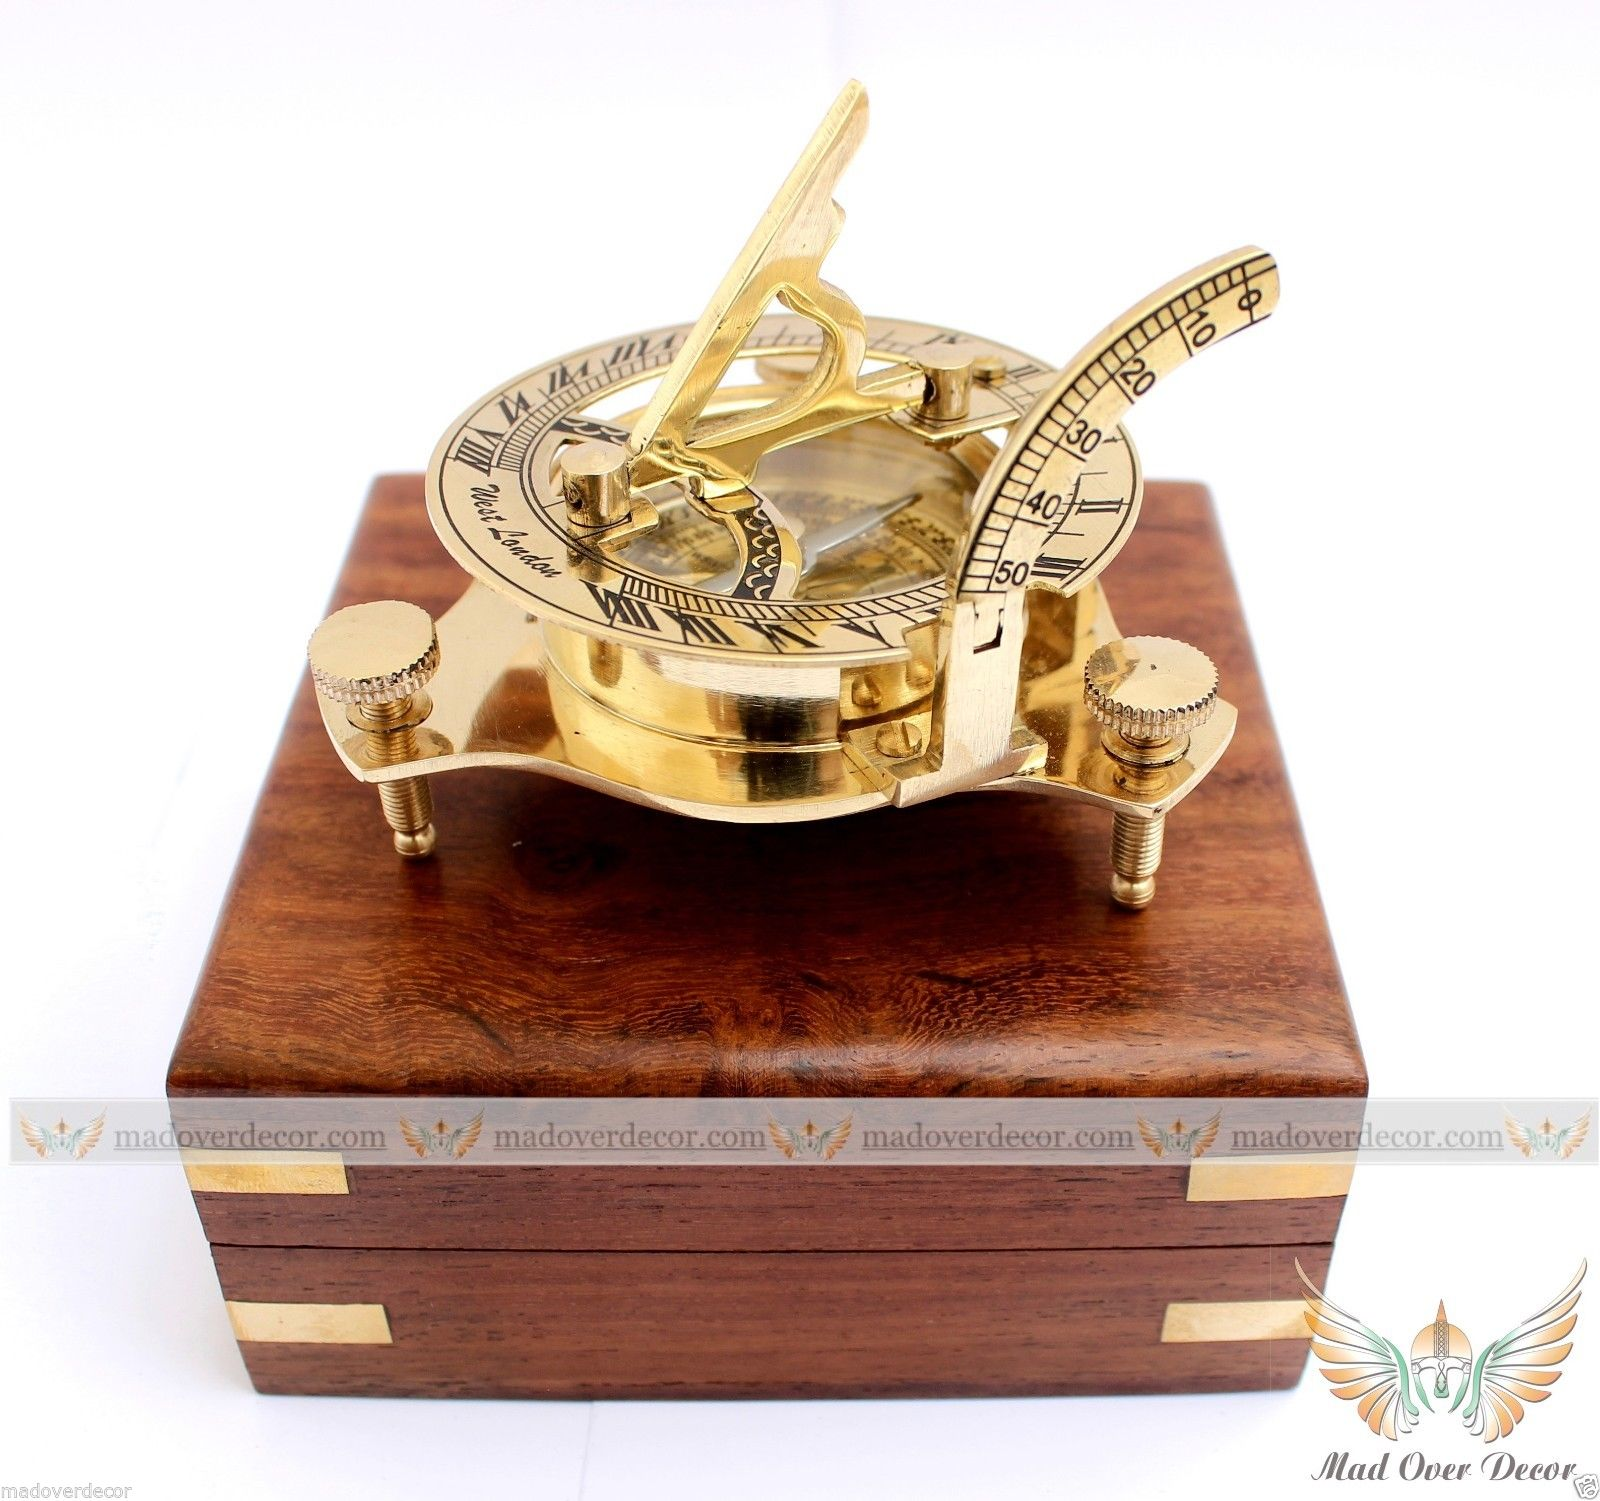 ANTIQUE BRASS ROYAL NAVY VINTAGE SUNDIAL PIRATE NAUTICAL MARITIME DESK DECOR